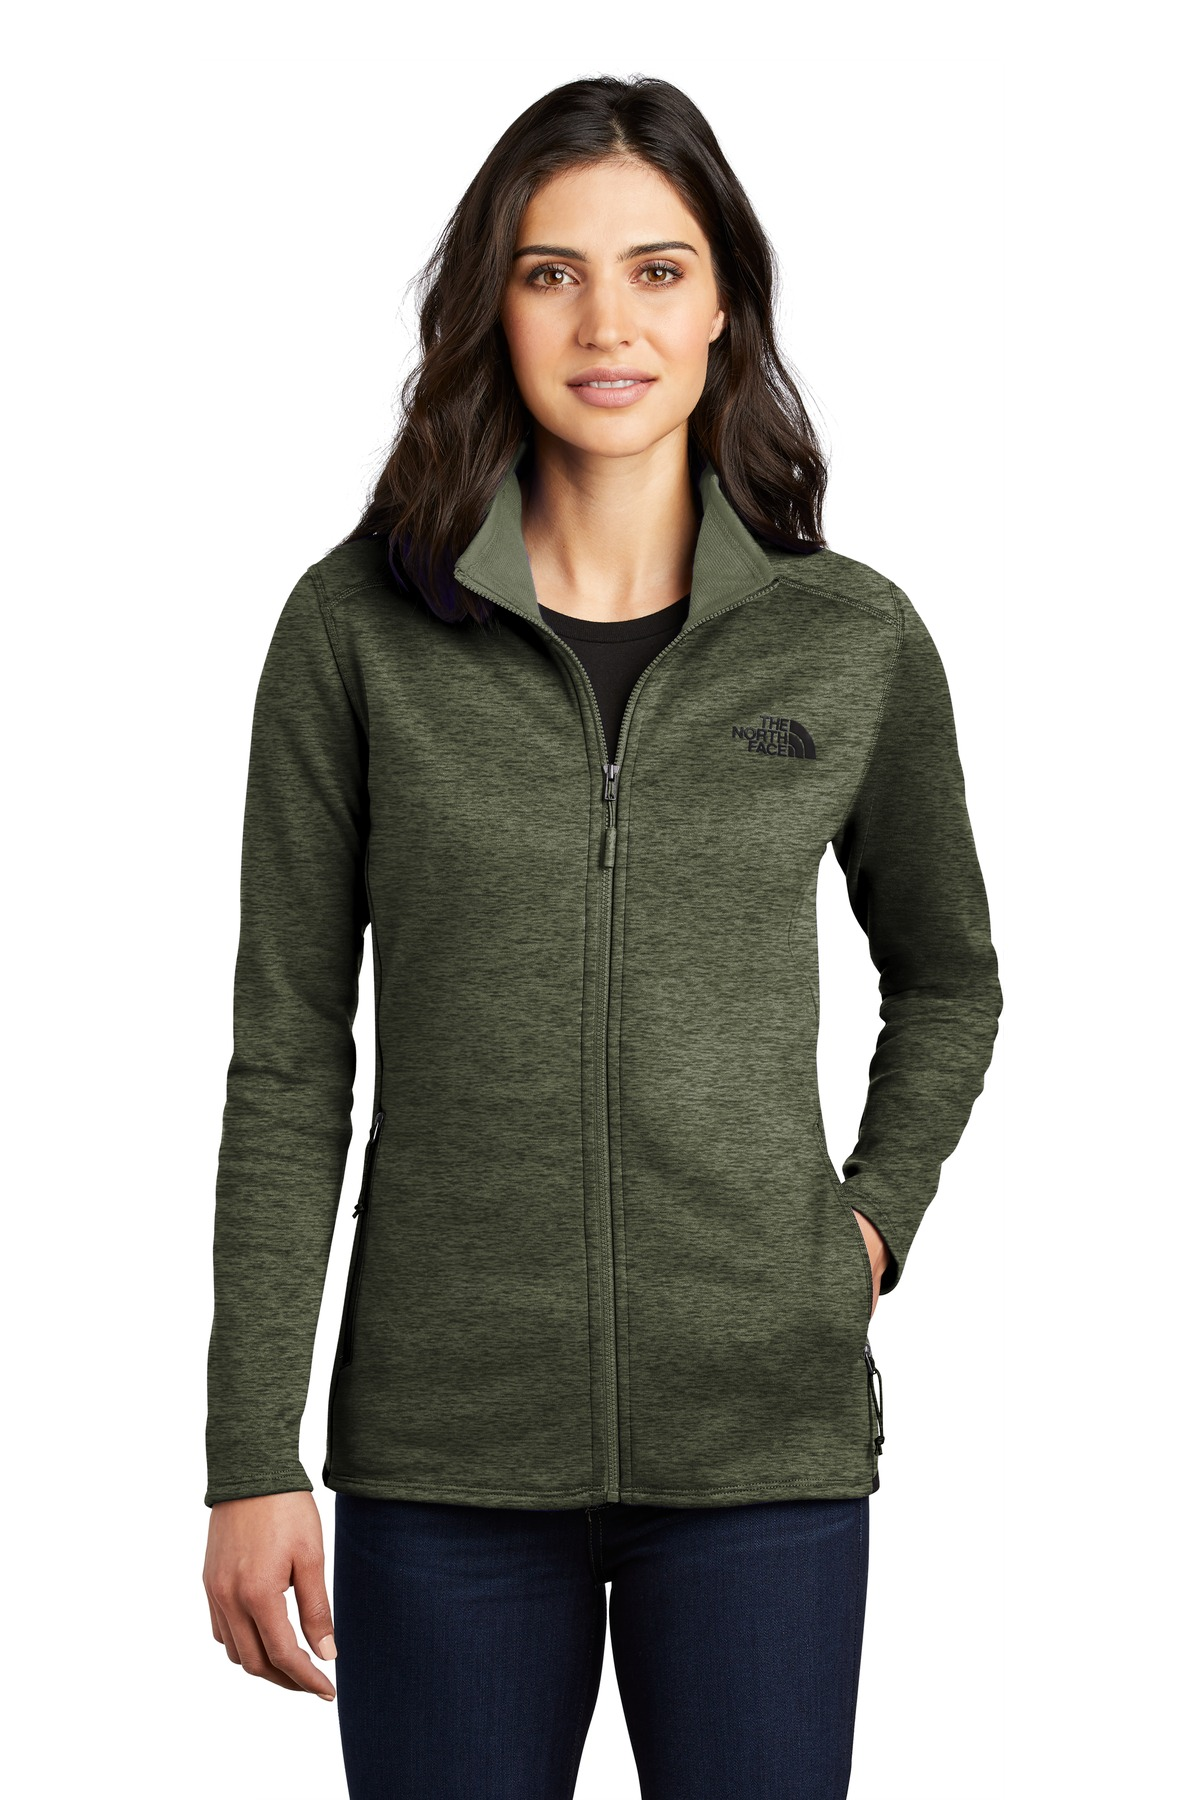 The North Face  ®  Ladies Skyline Full-Zip Fleece Jacket NF0A47F6 - Four Leaf Clover Heather